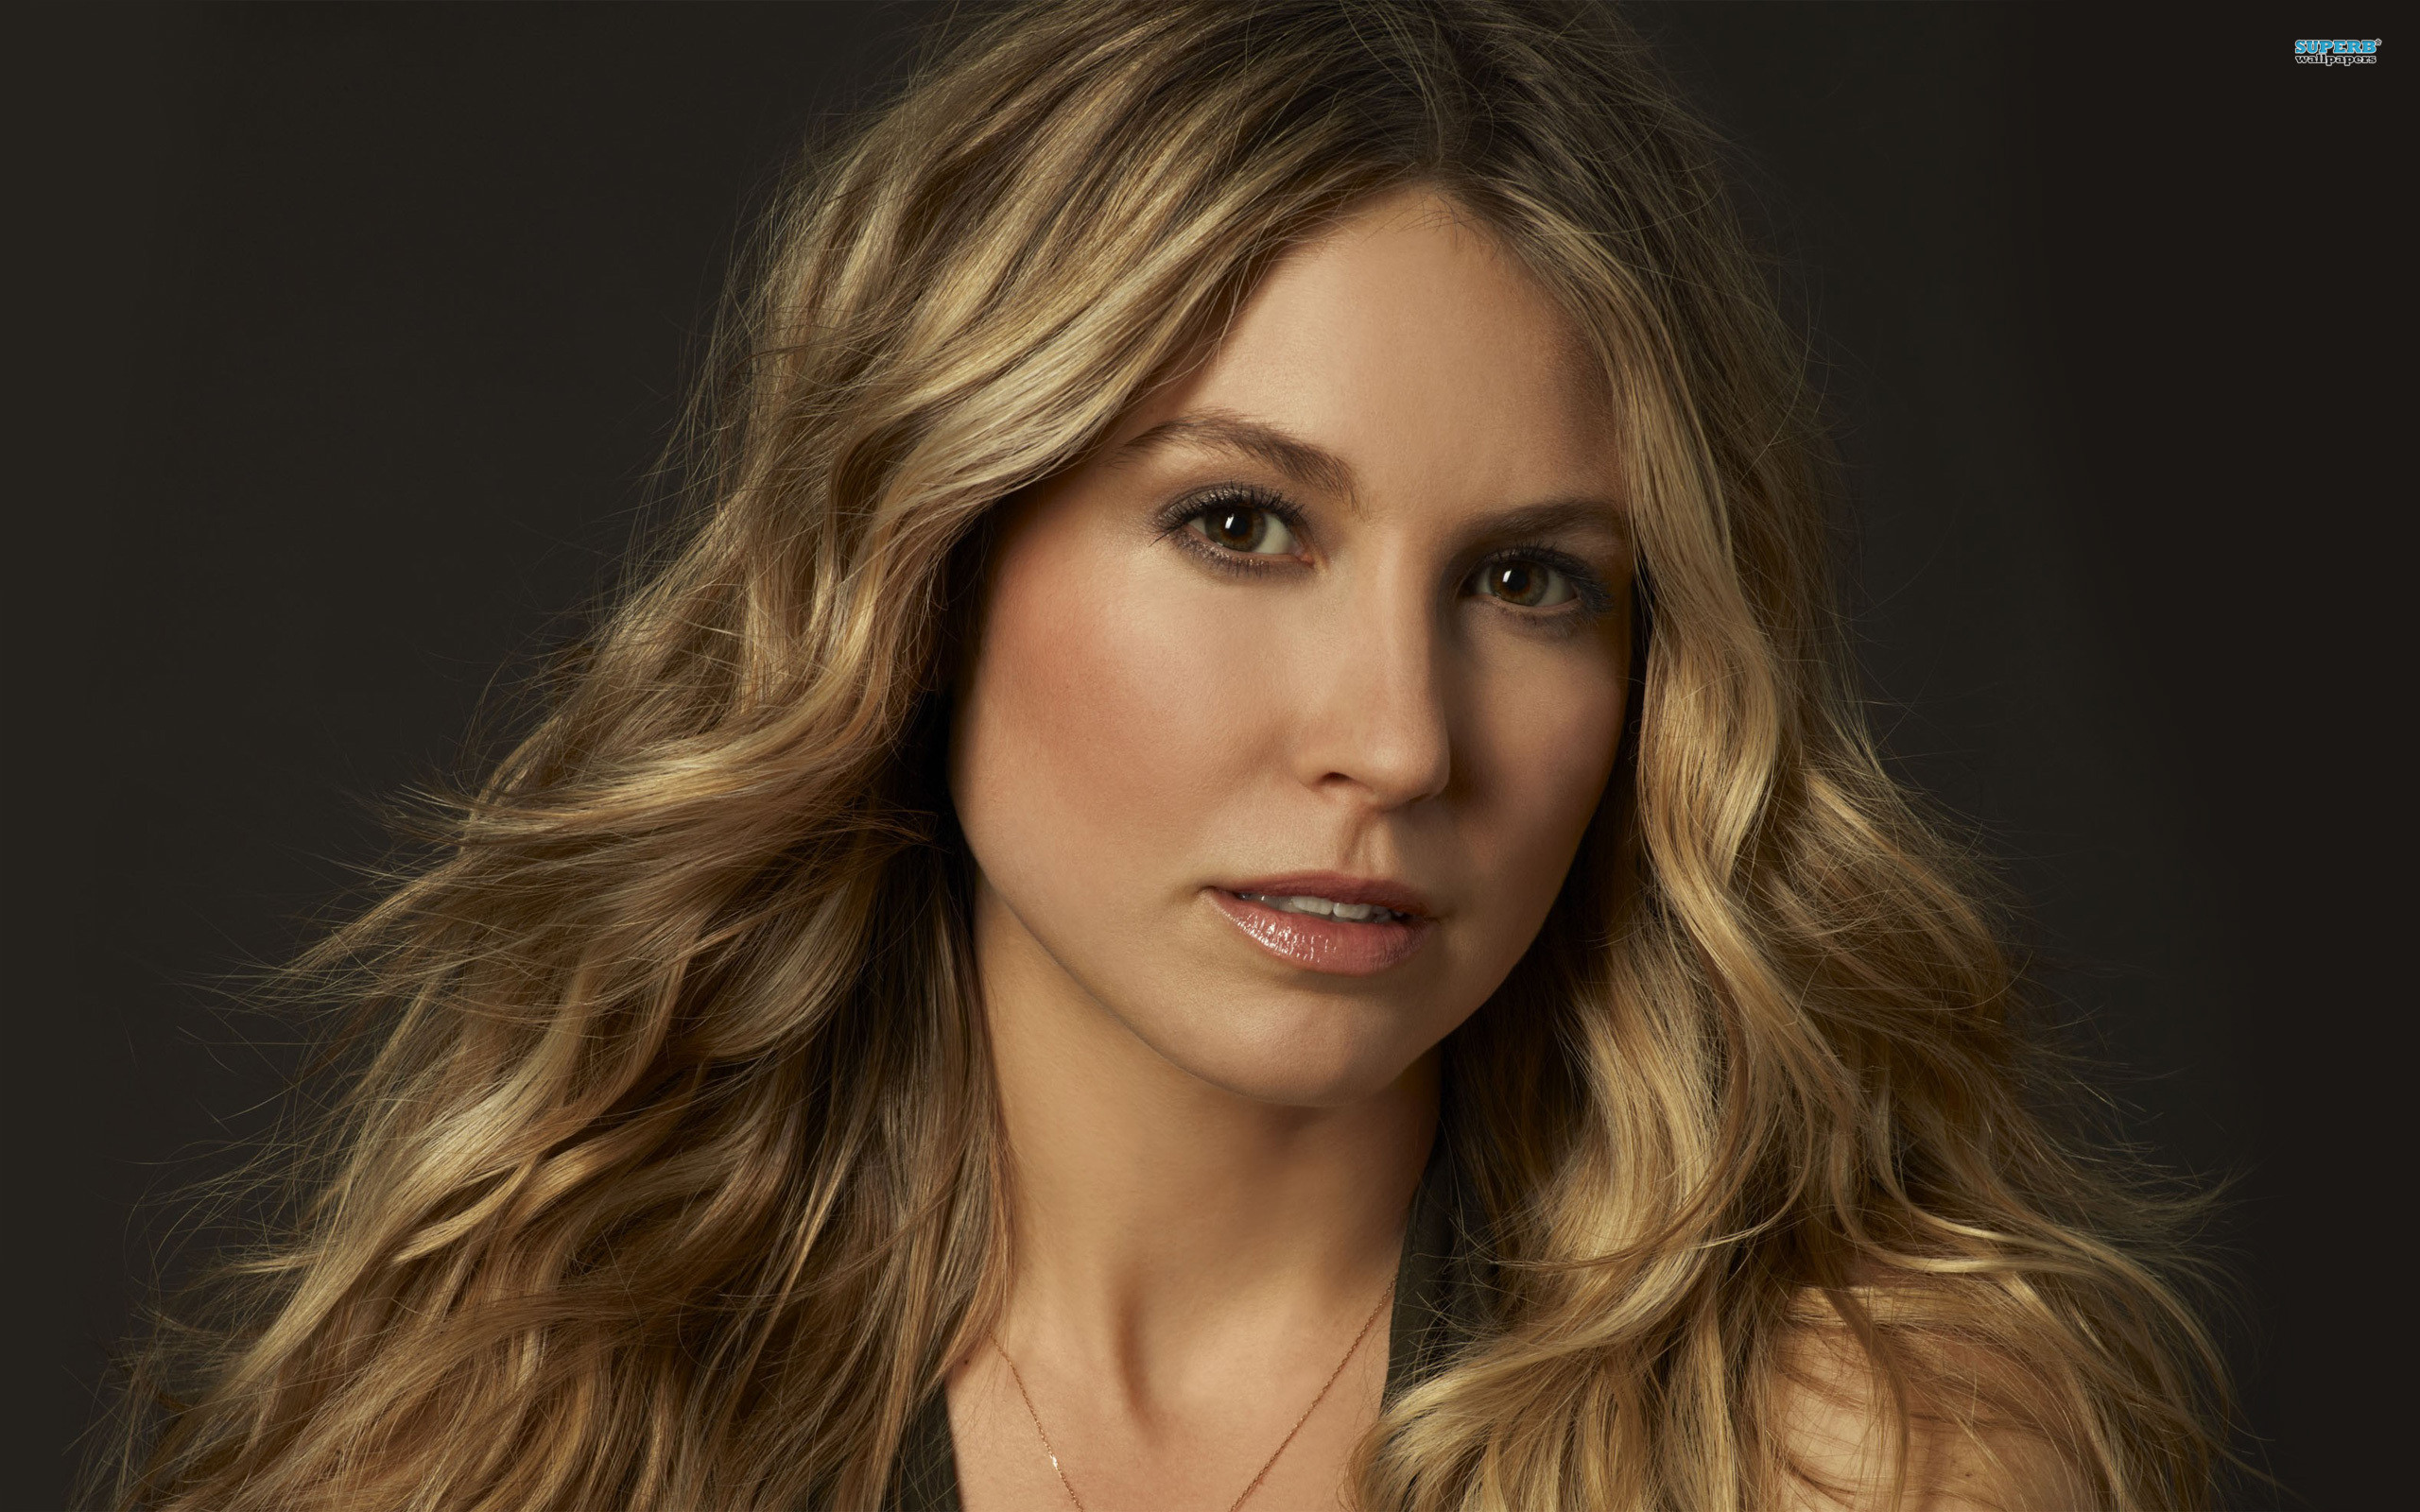 Sarah Carter Wallpapers High Resolution and Quality Download